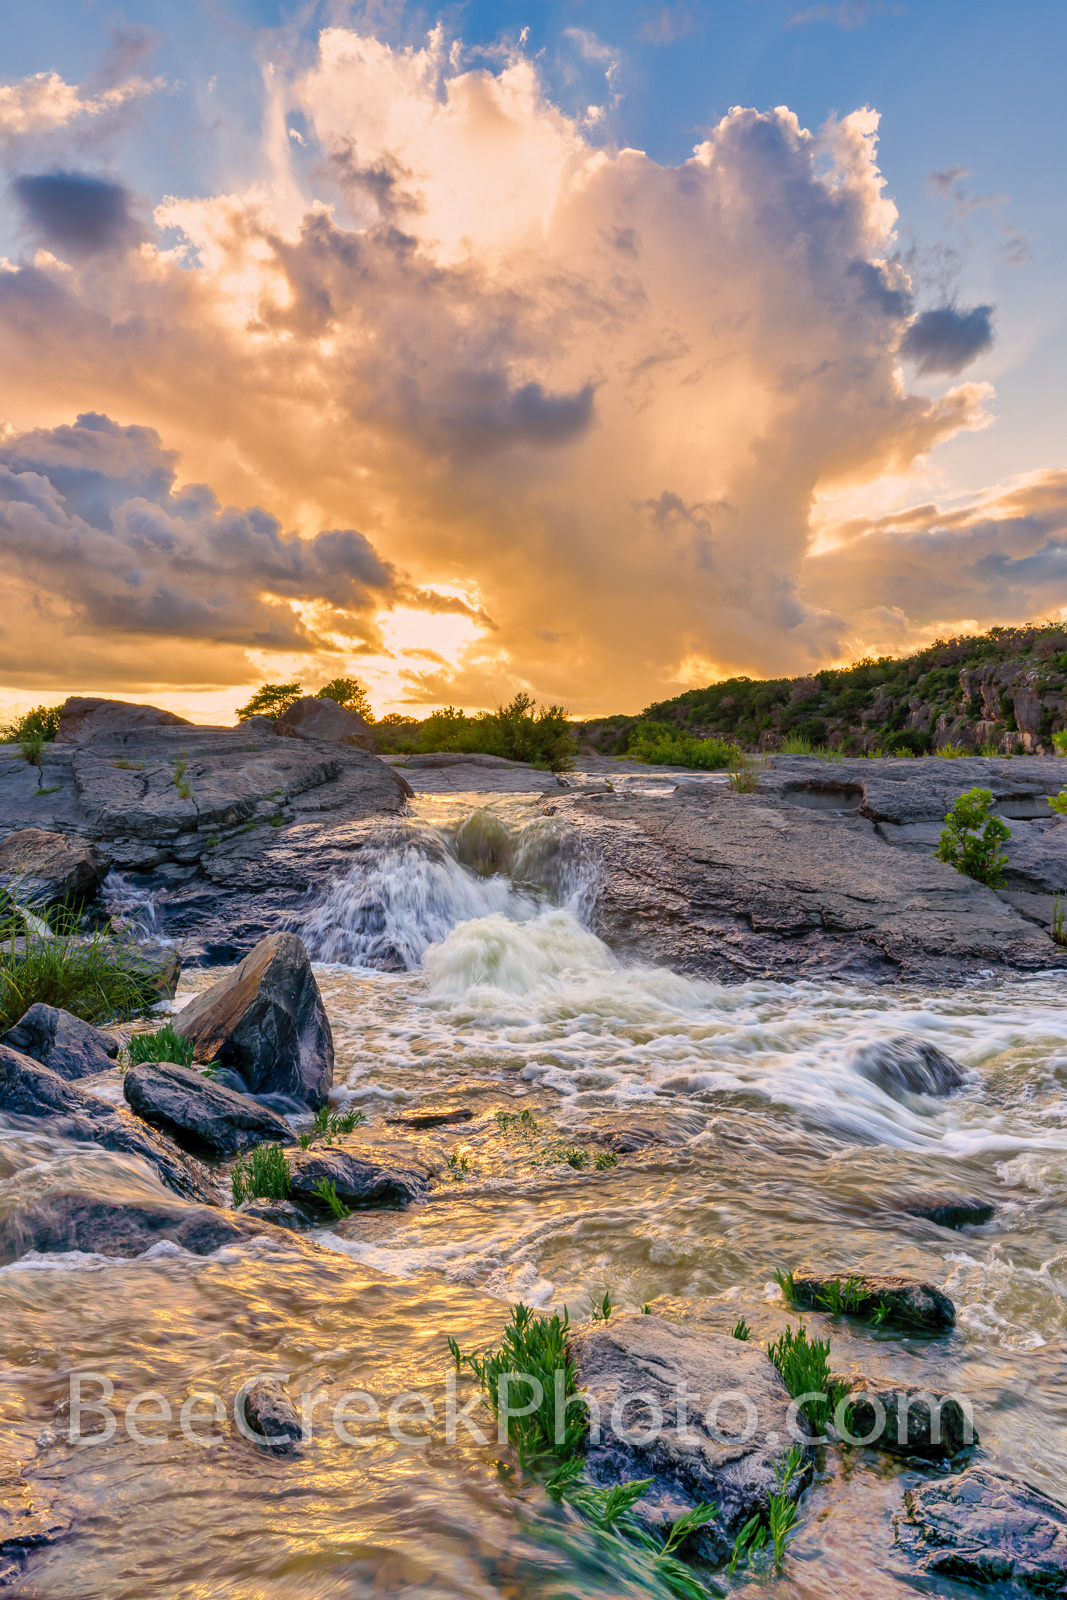 Pedernales Falls Vertical - We have had an excess of rain this spring and June was no exception so a trip to the pedernales river...